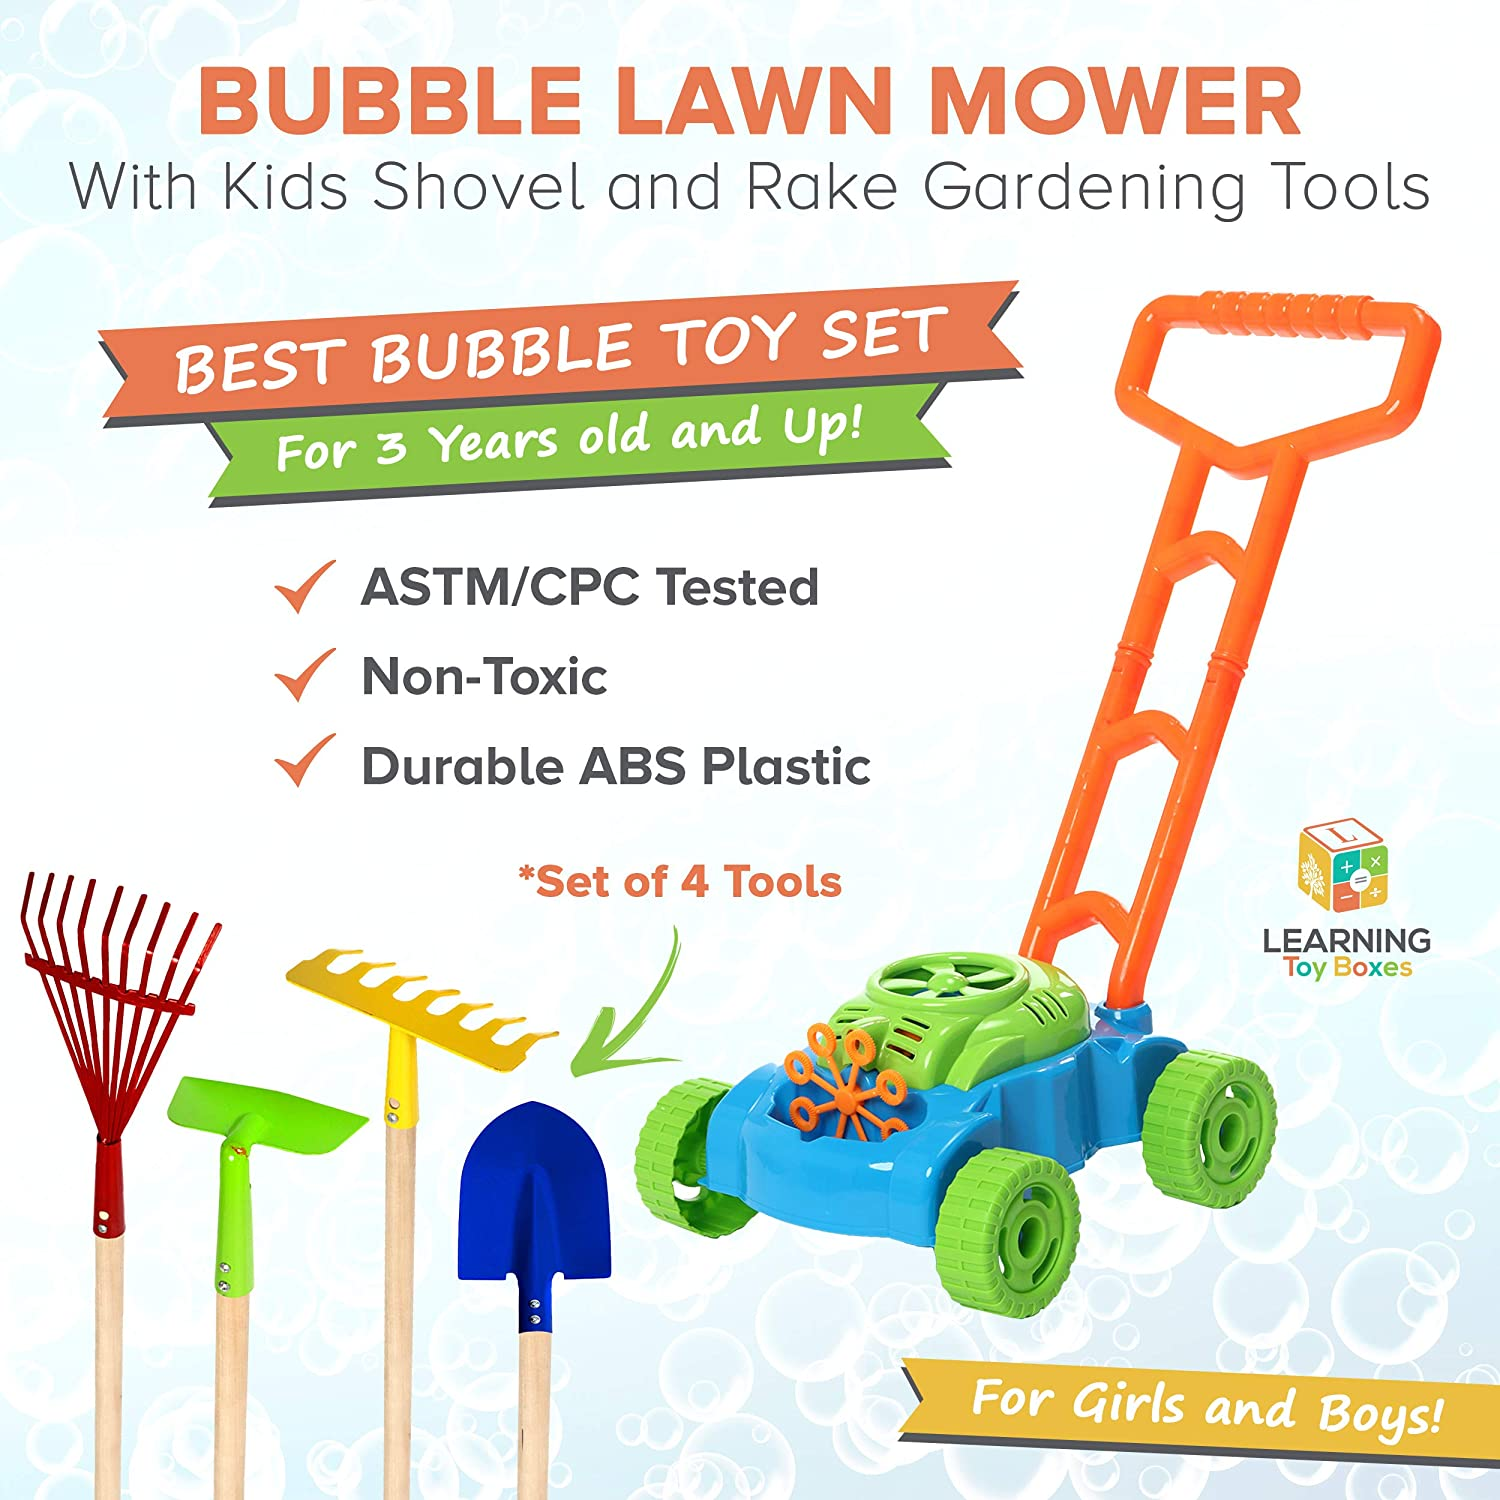 6 PCS Bubble Lawn Mower Bundle with Kids Shovel and Rake Gardening Tools Set Features Metal Kids Shovel with Wooden Handles /& Battery Operated Bubble Mower